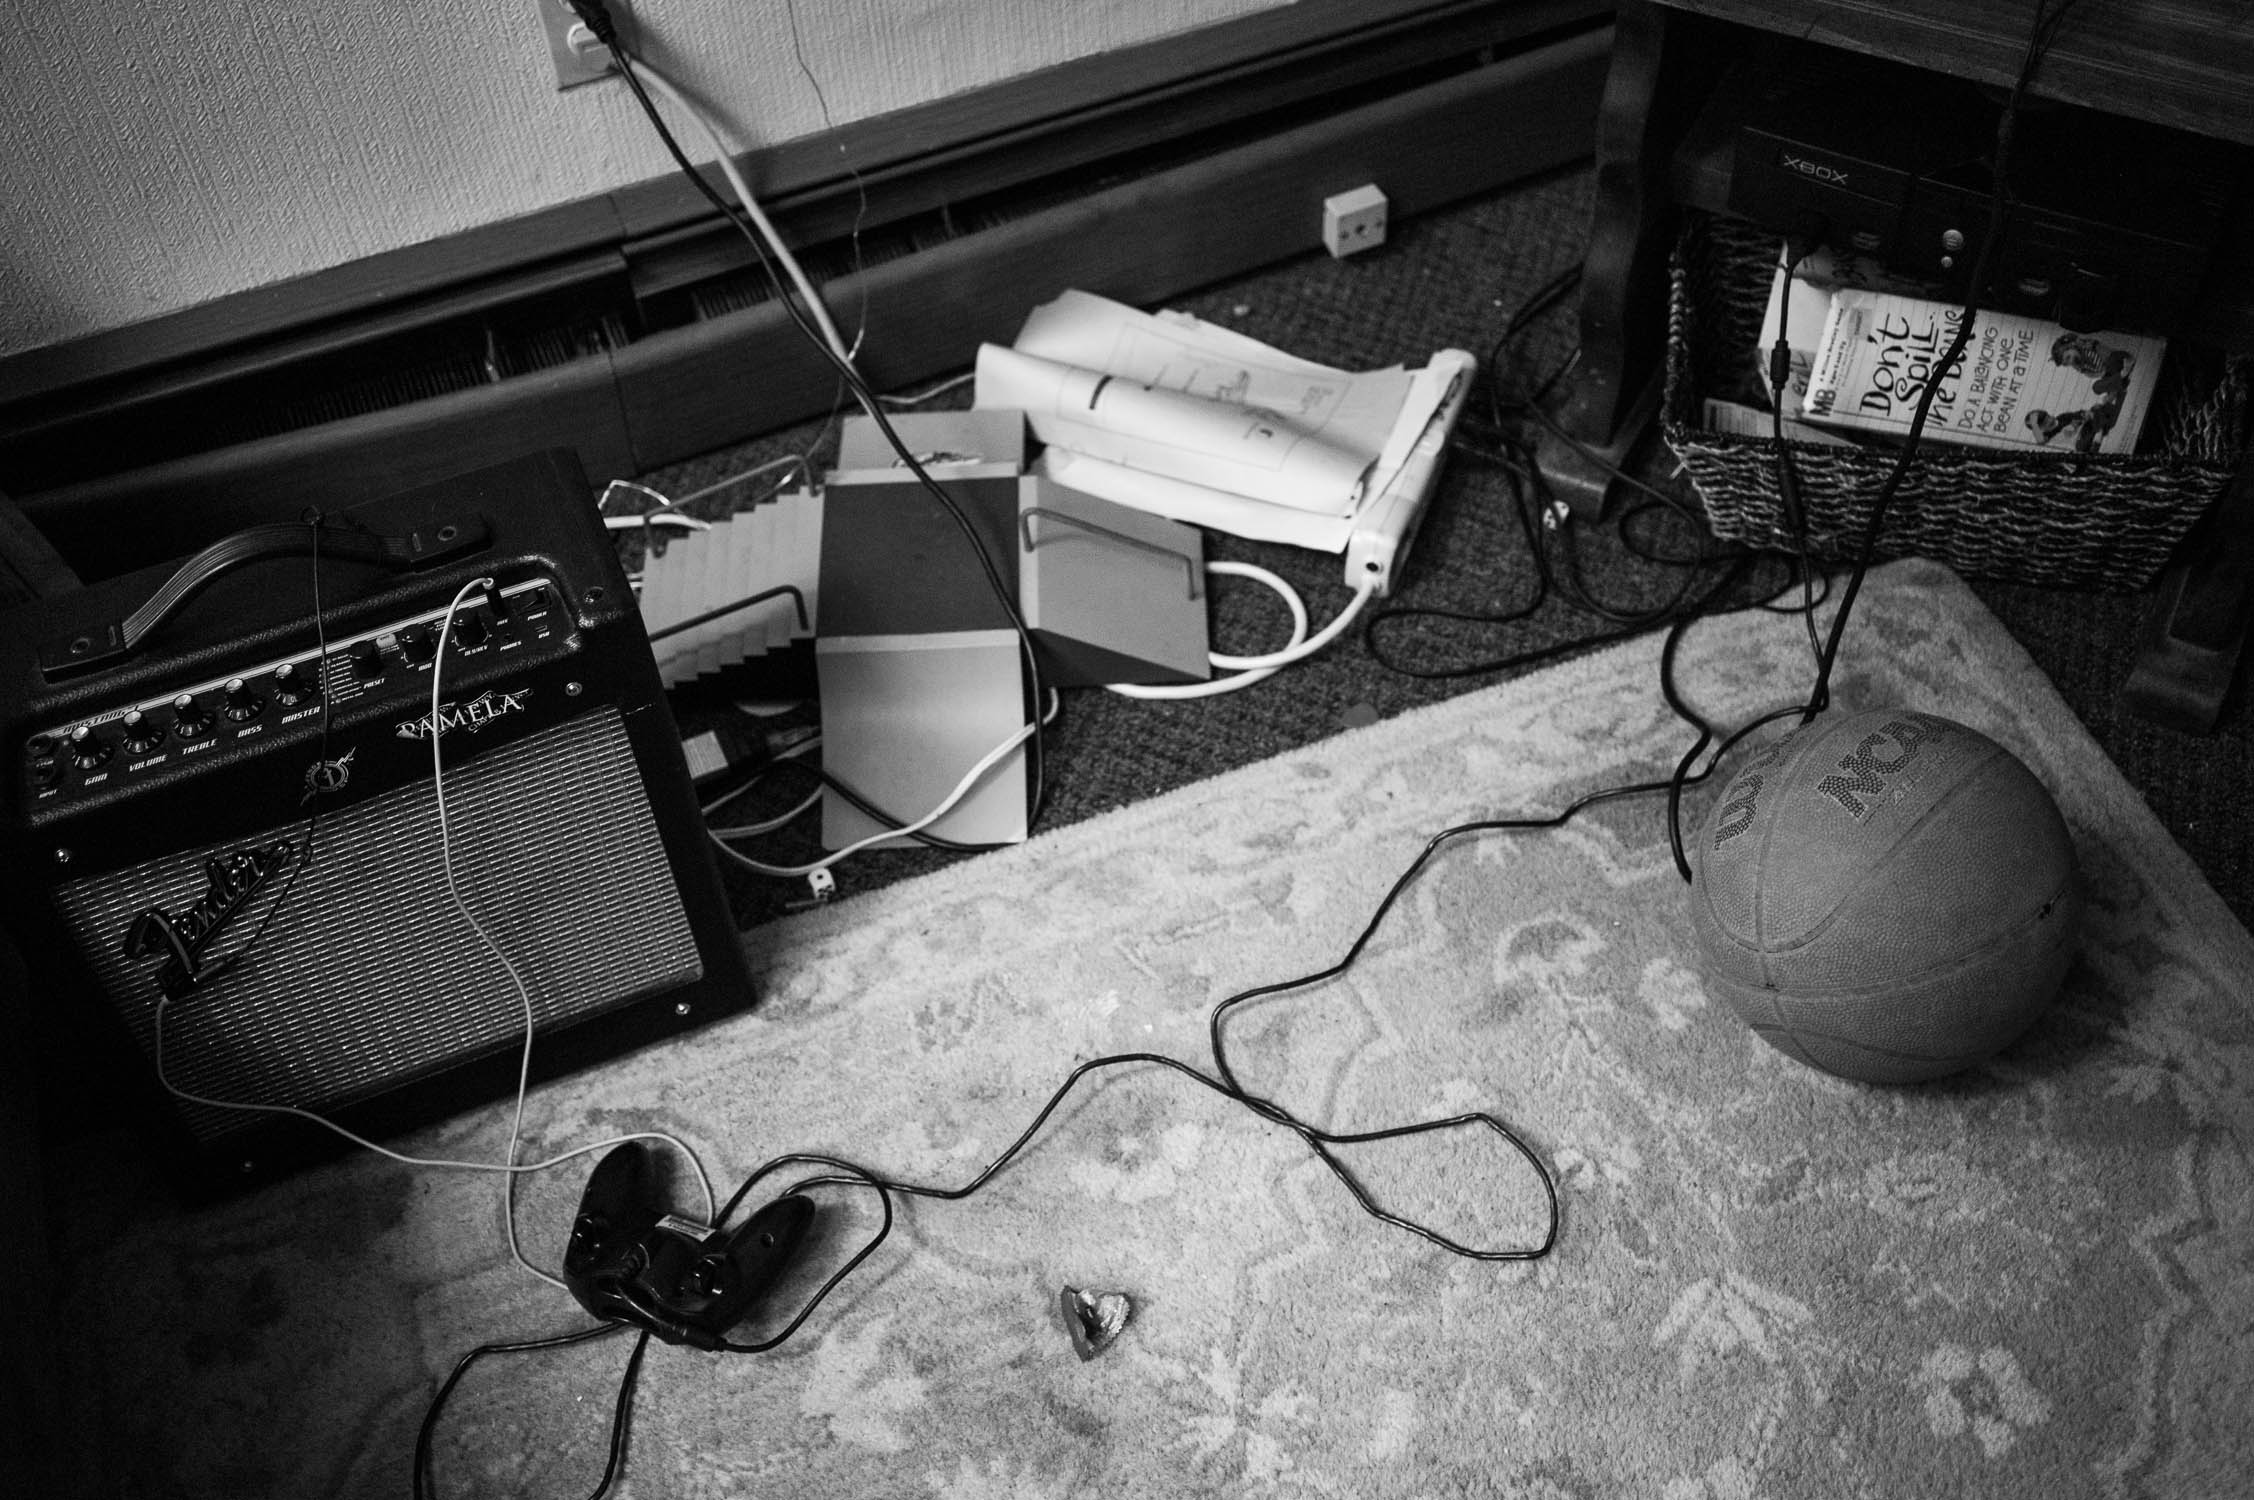 A practice amp, xbox controller, and tech deck skate park on the floor of Avenue D.I.Y.